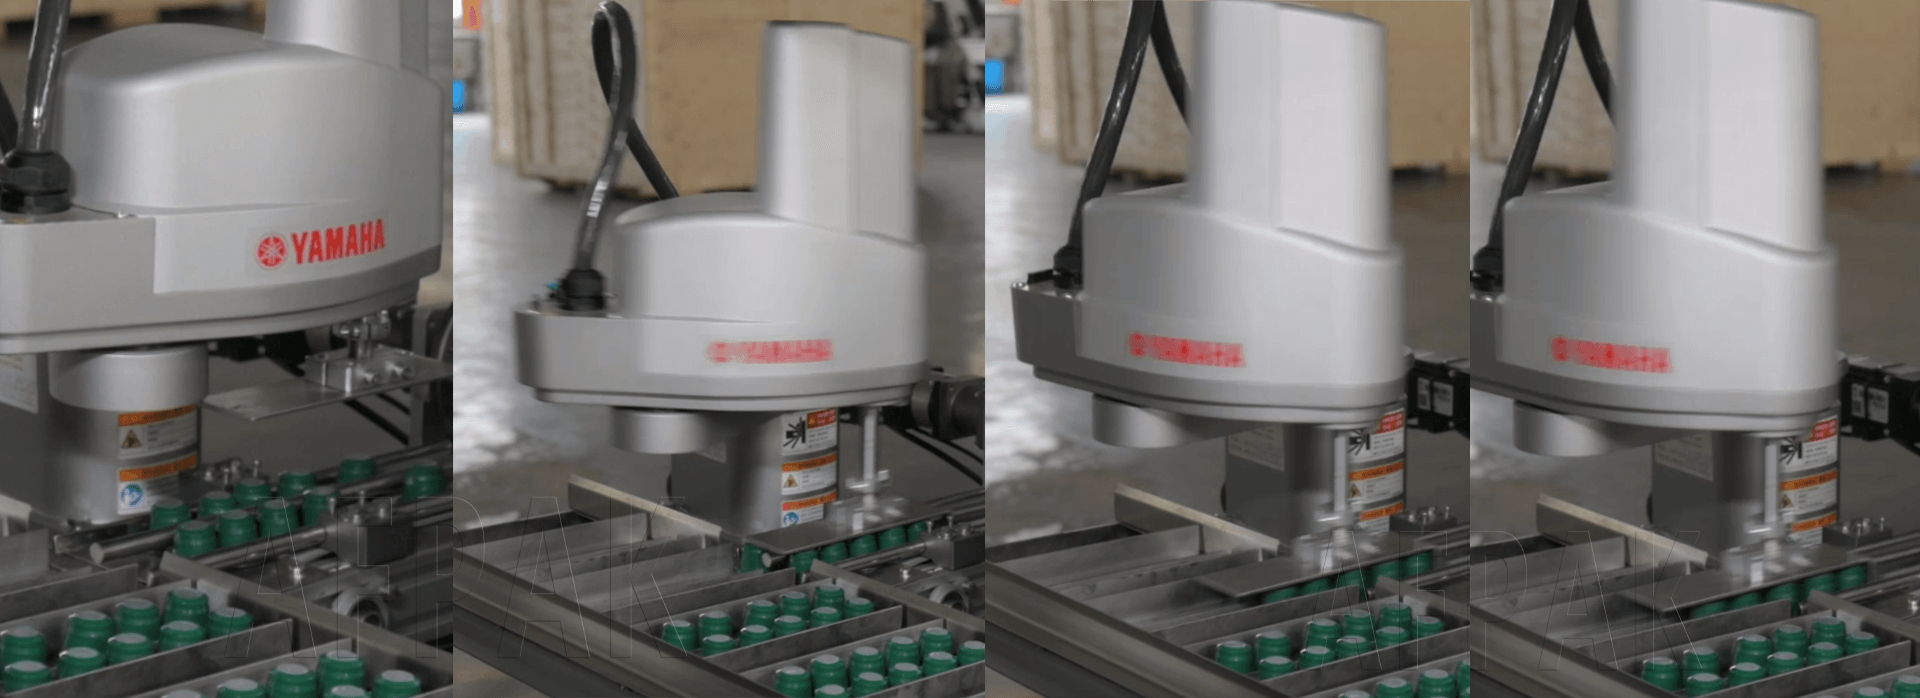 robot-hand-of-coffee-capsule-packaging-machine